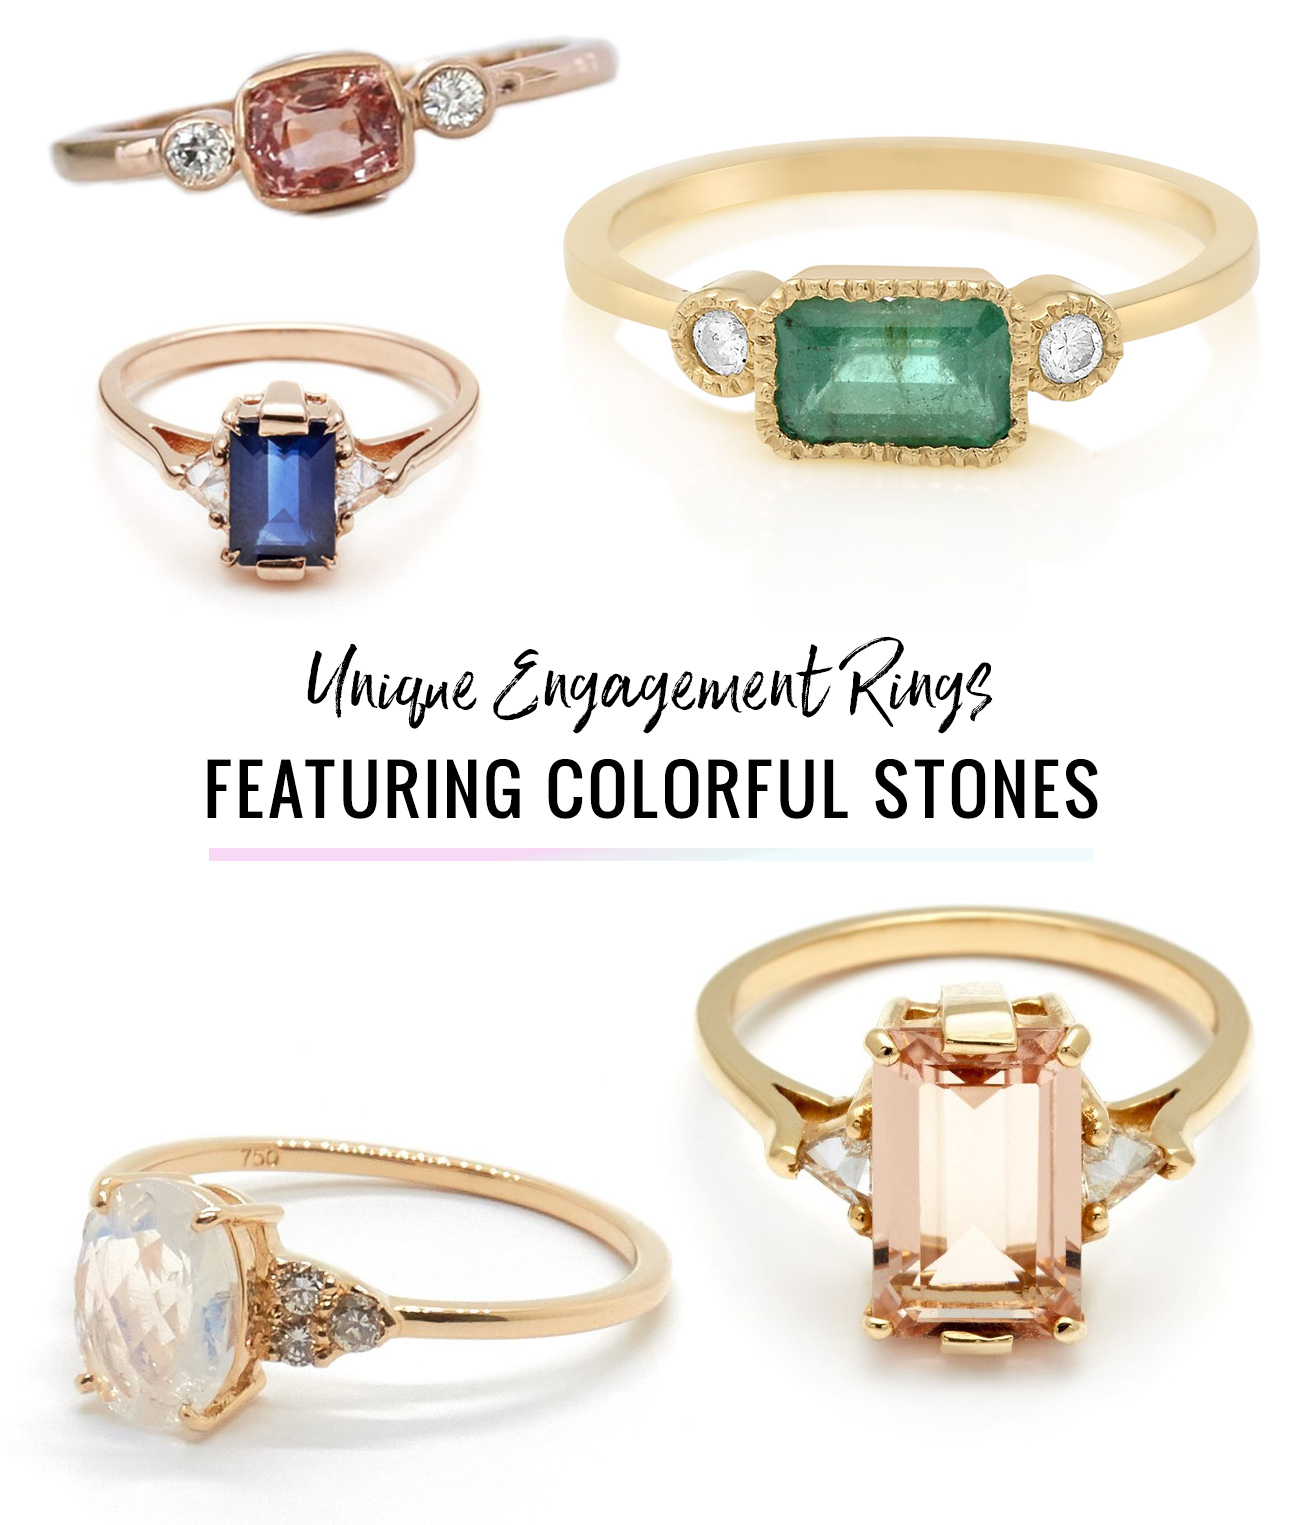 Ditch The Diamond Alternative Engagement Rings Featuring A Colored